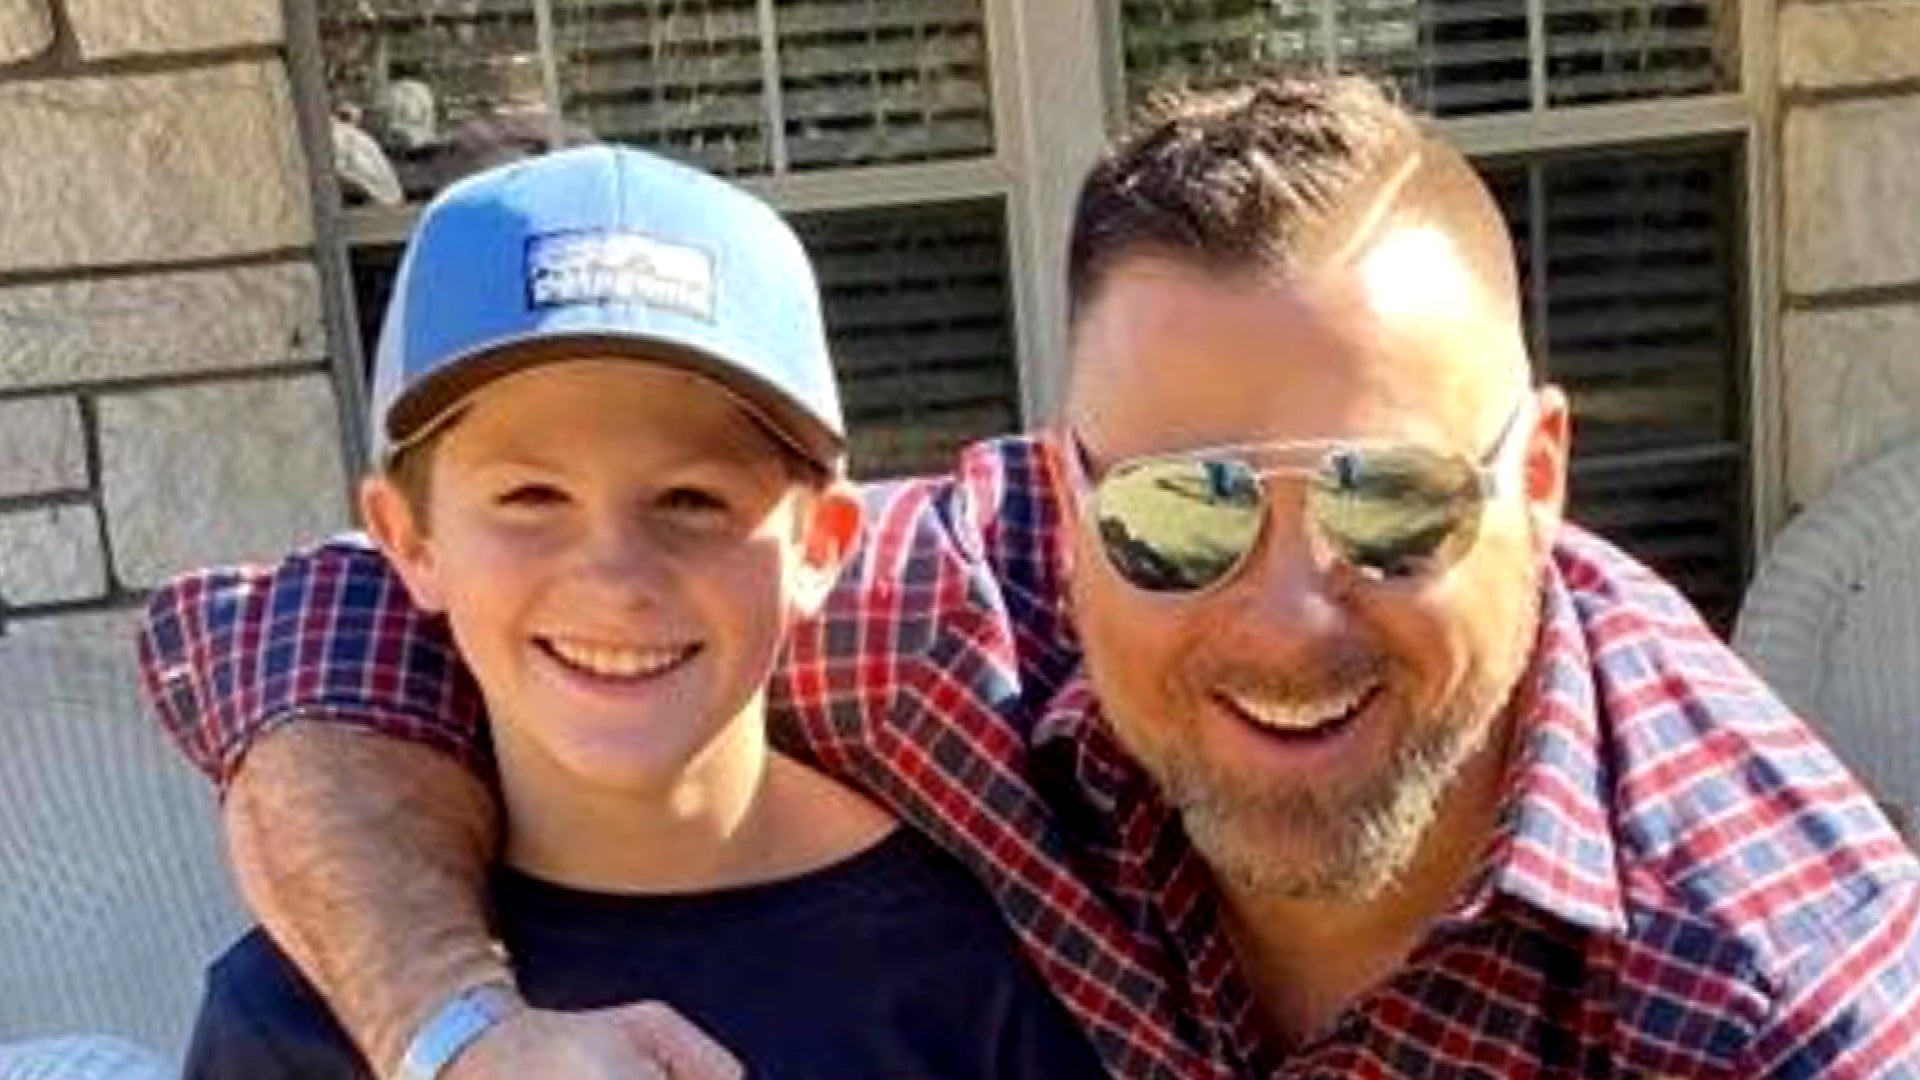 Texas Dad Makes Documentary About 12-Year-Old Son's Suicide in Lockdown